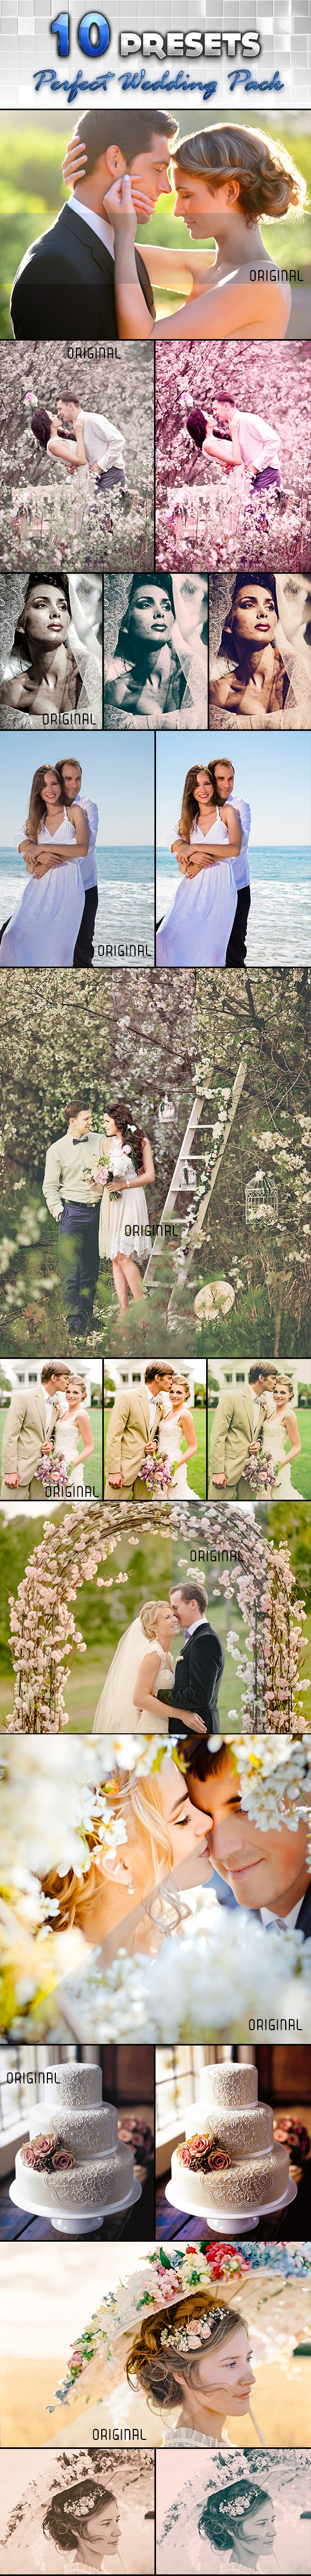 Perfect Wedding Pack - Wedding Lightroom Presets